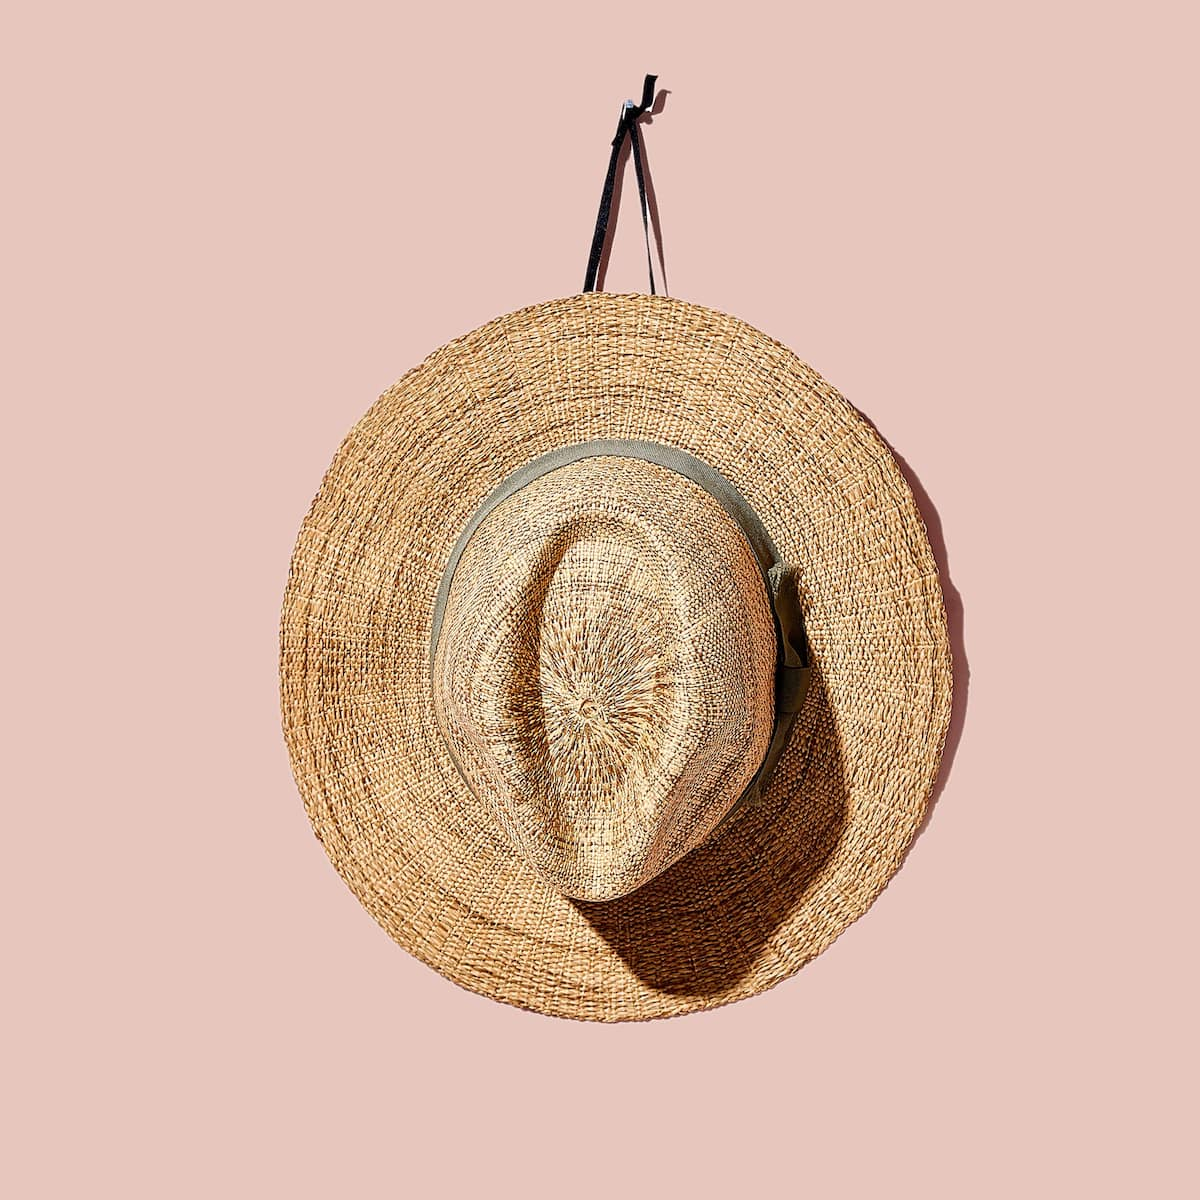 Image 1 Of The Product HAT WITH CONTRASTING BAND